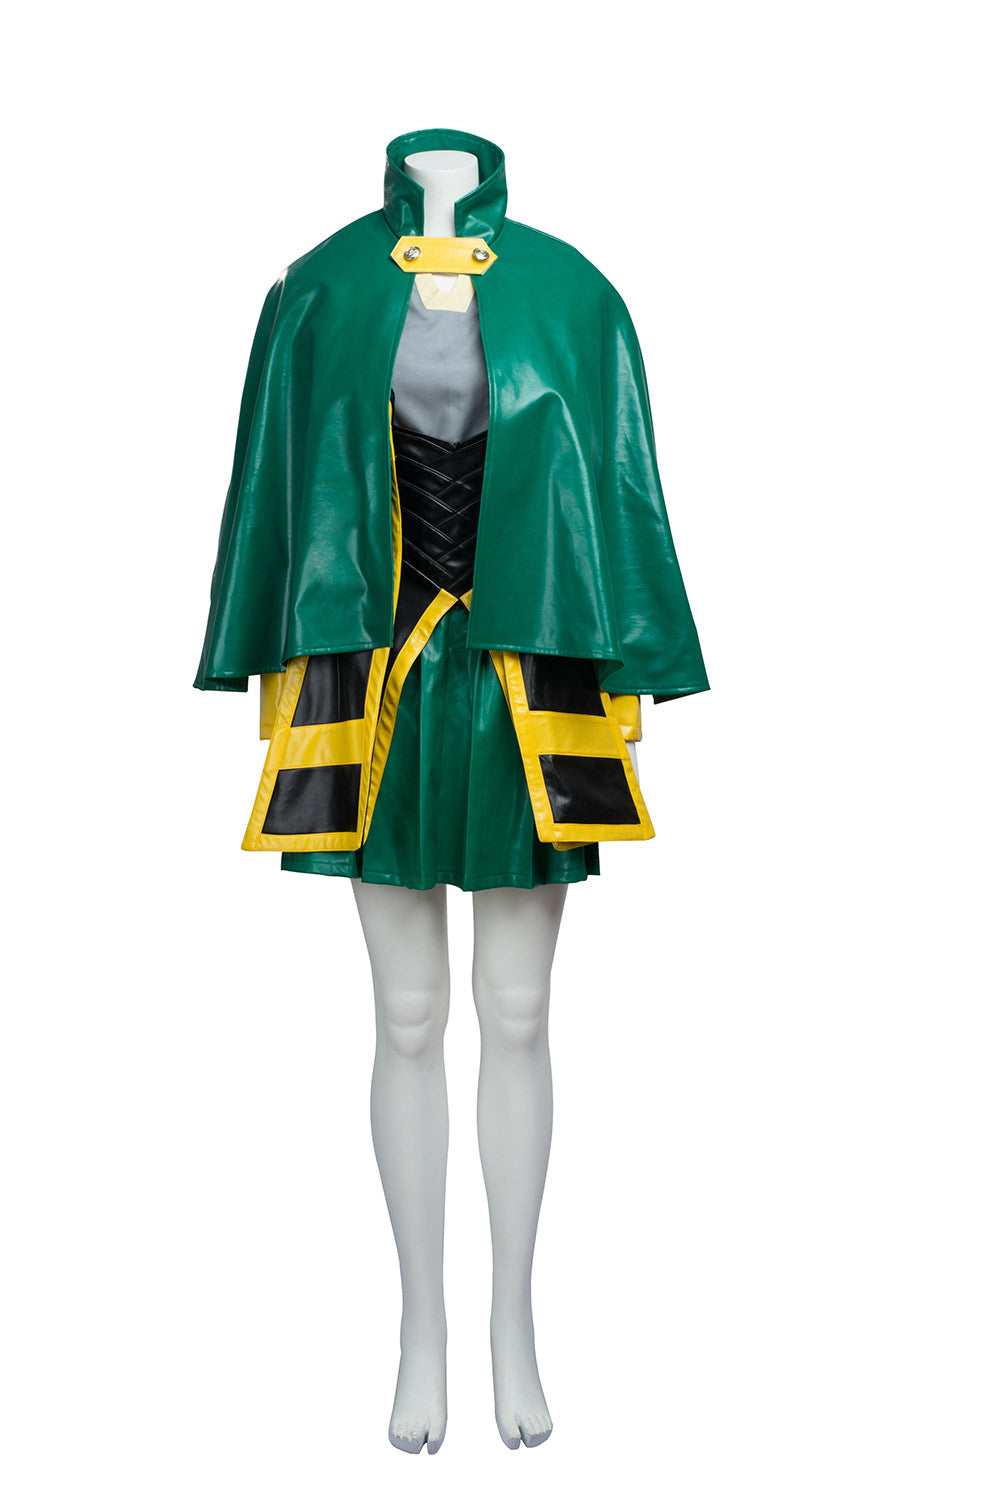 Marvel Avengers Thor Loki Female Version Dress Cosplay Costume